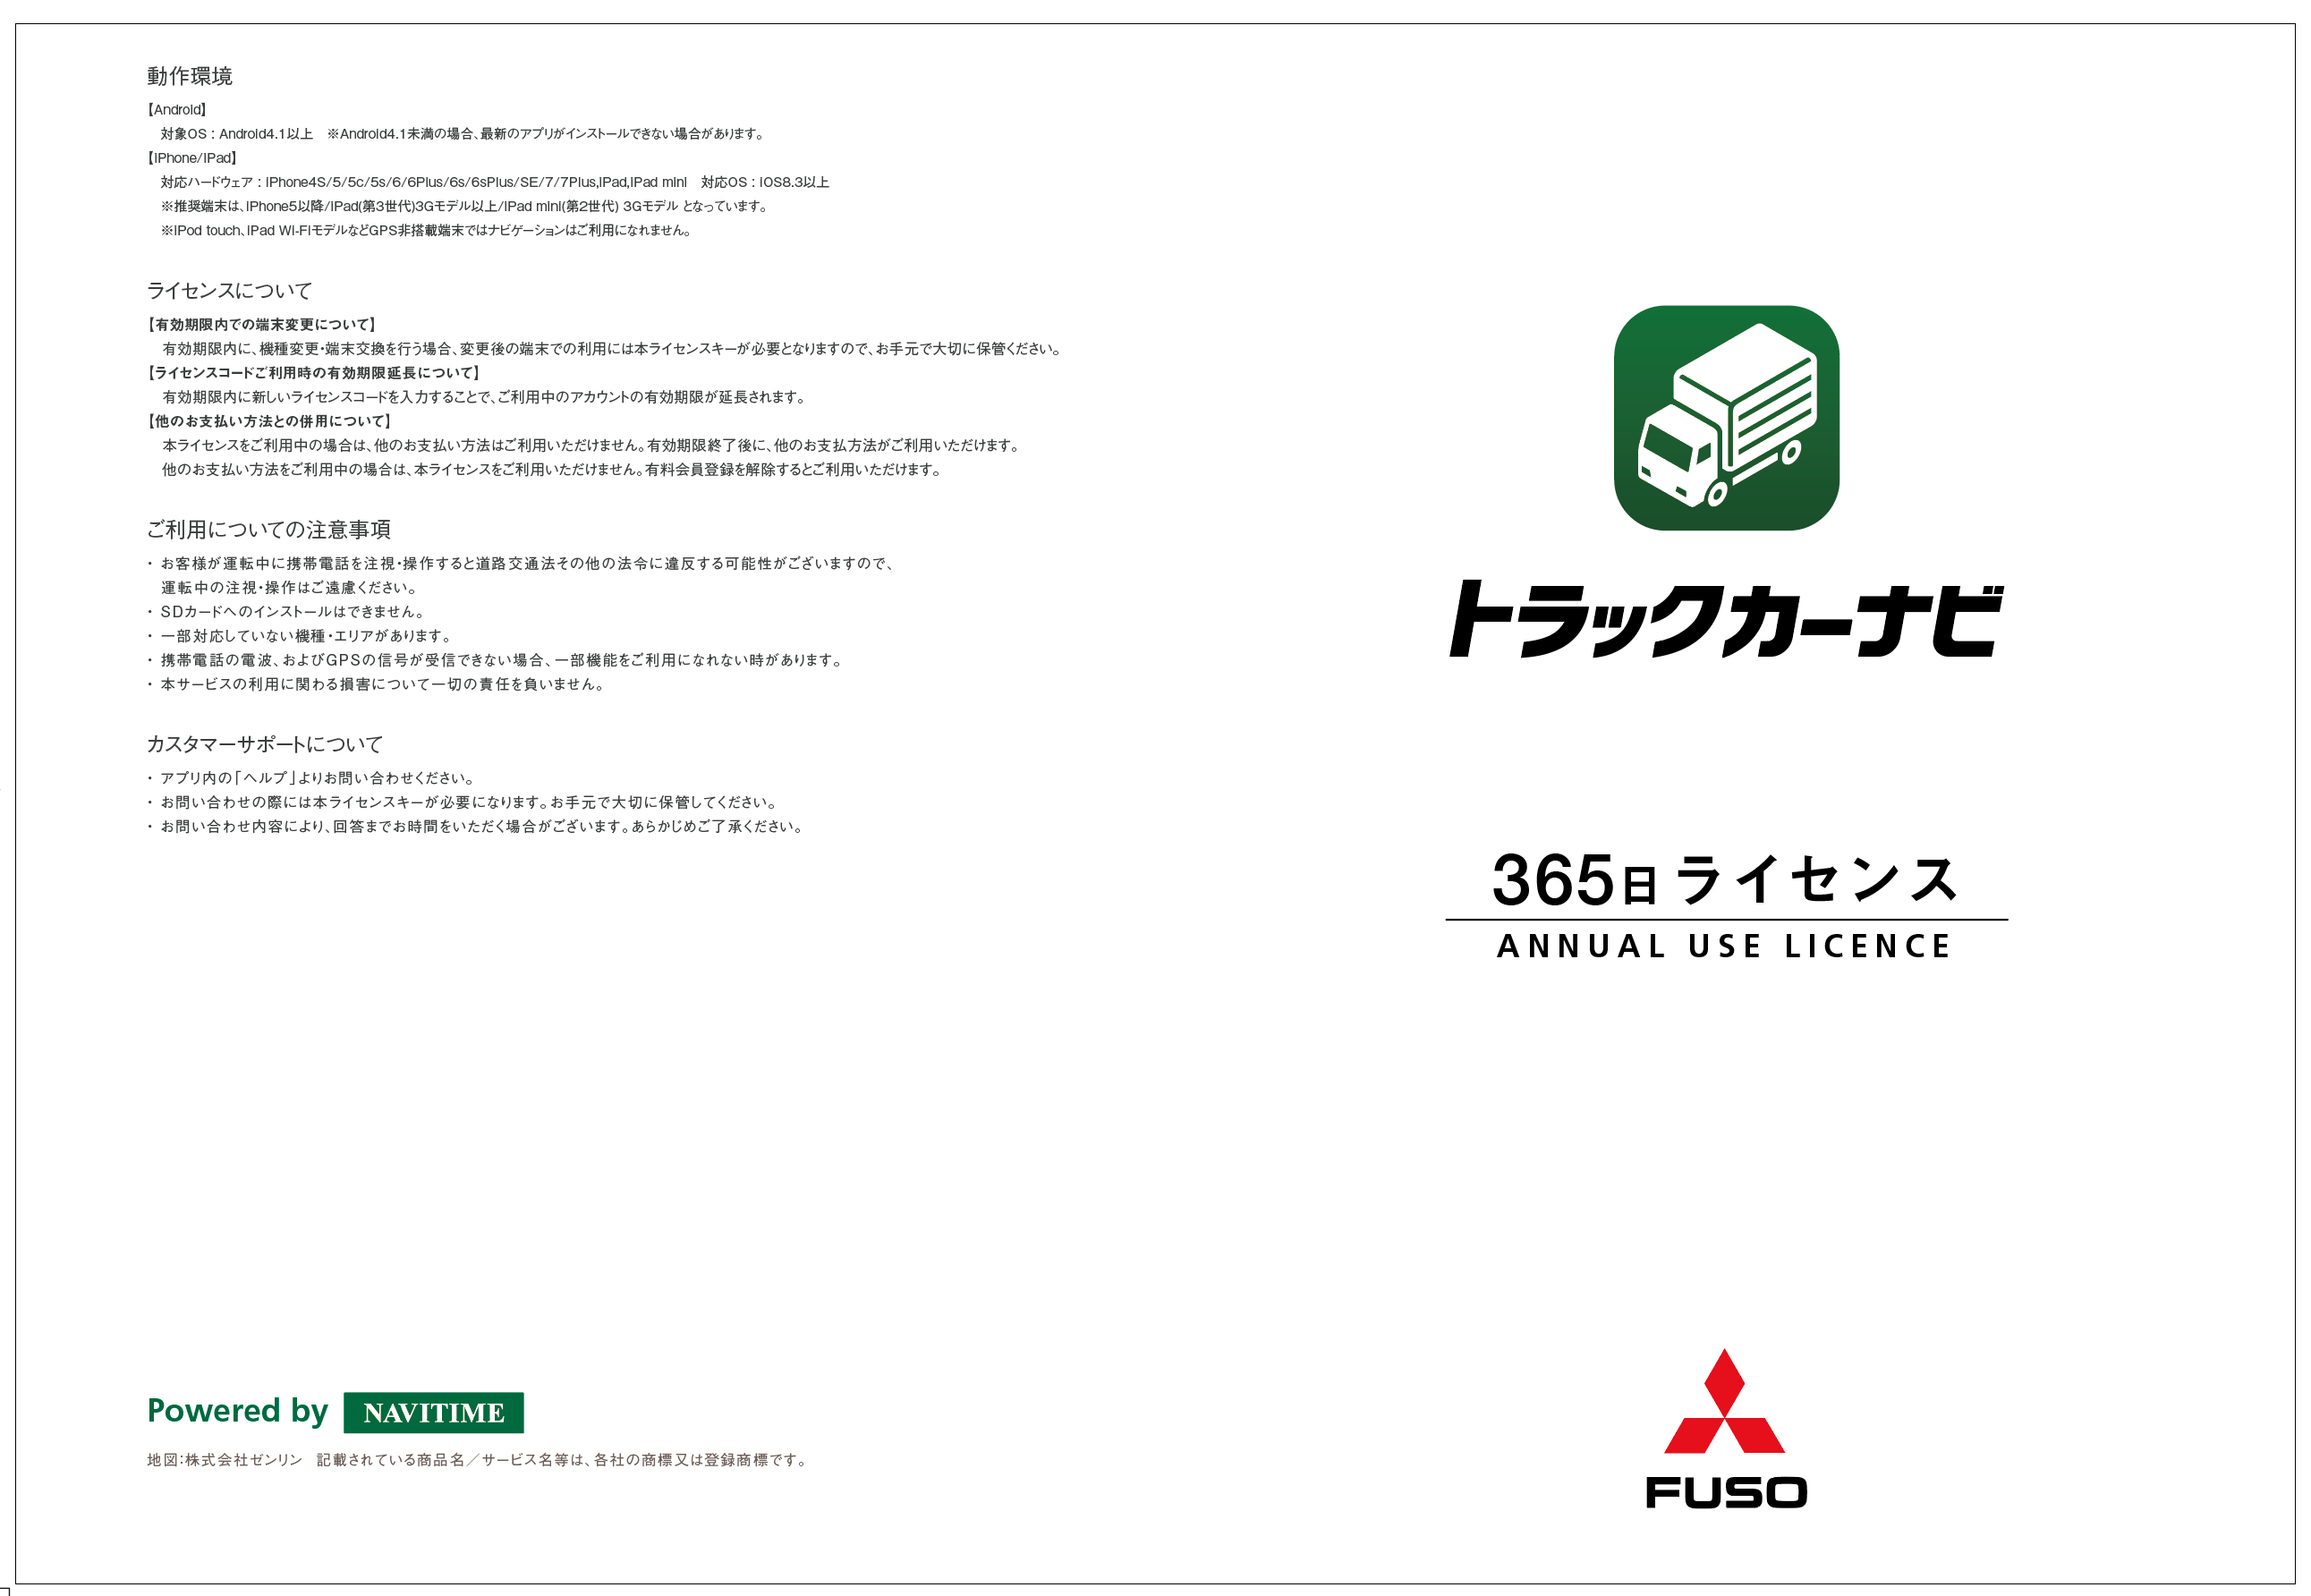 http://corporate.navitime.co.jp/topics/ffe7e4548c26a89e7080ef55d22a882ac897d1ae.png